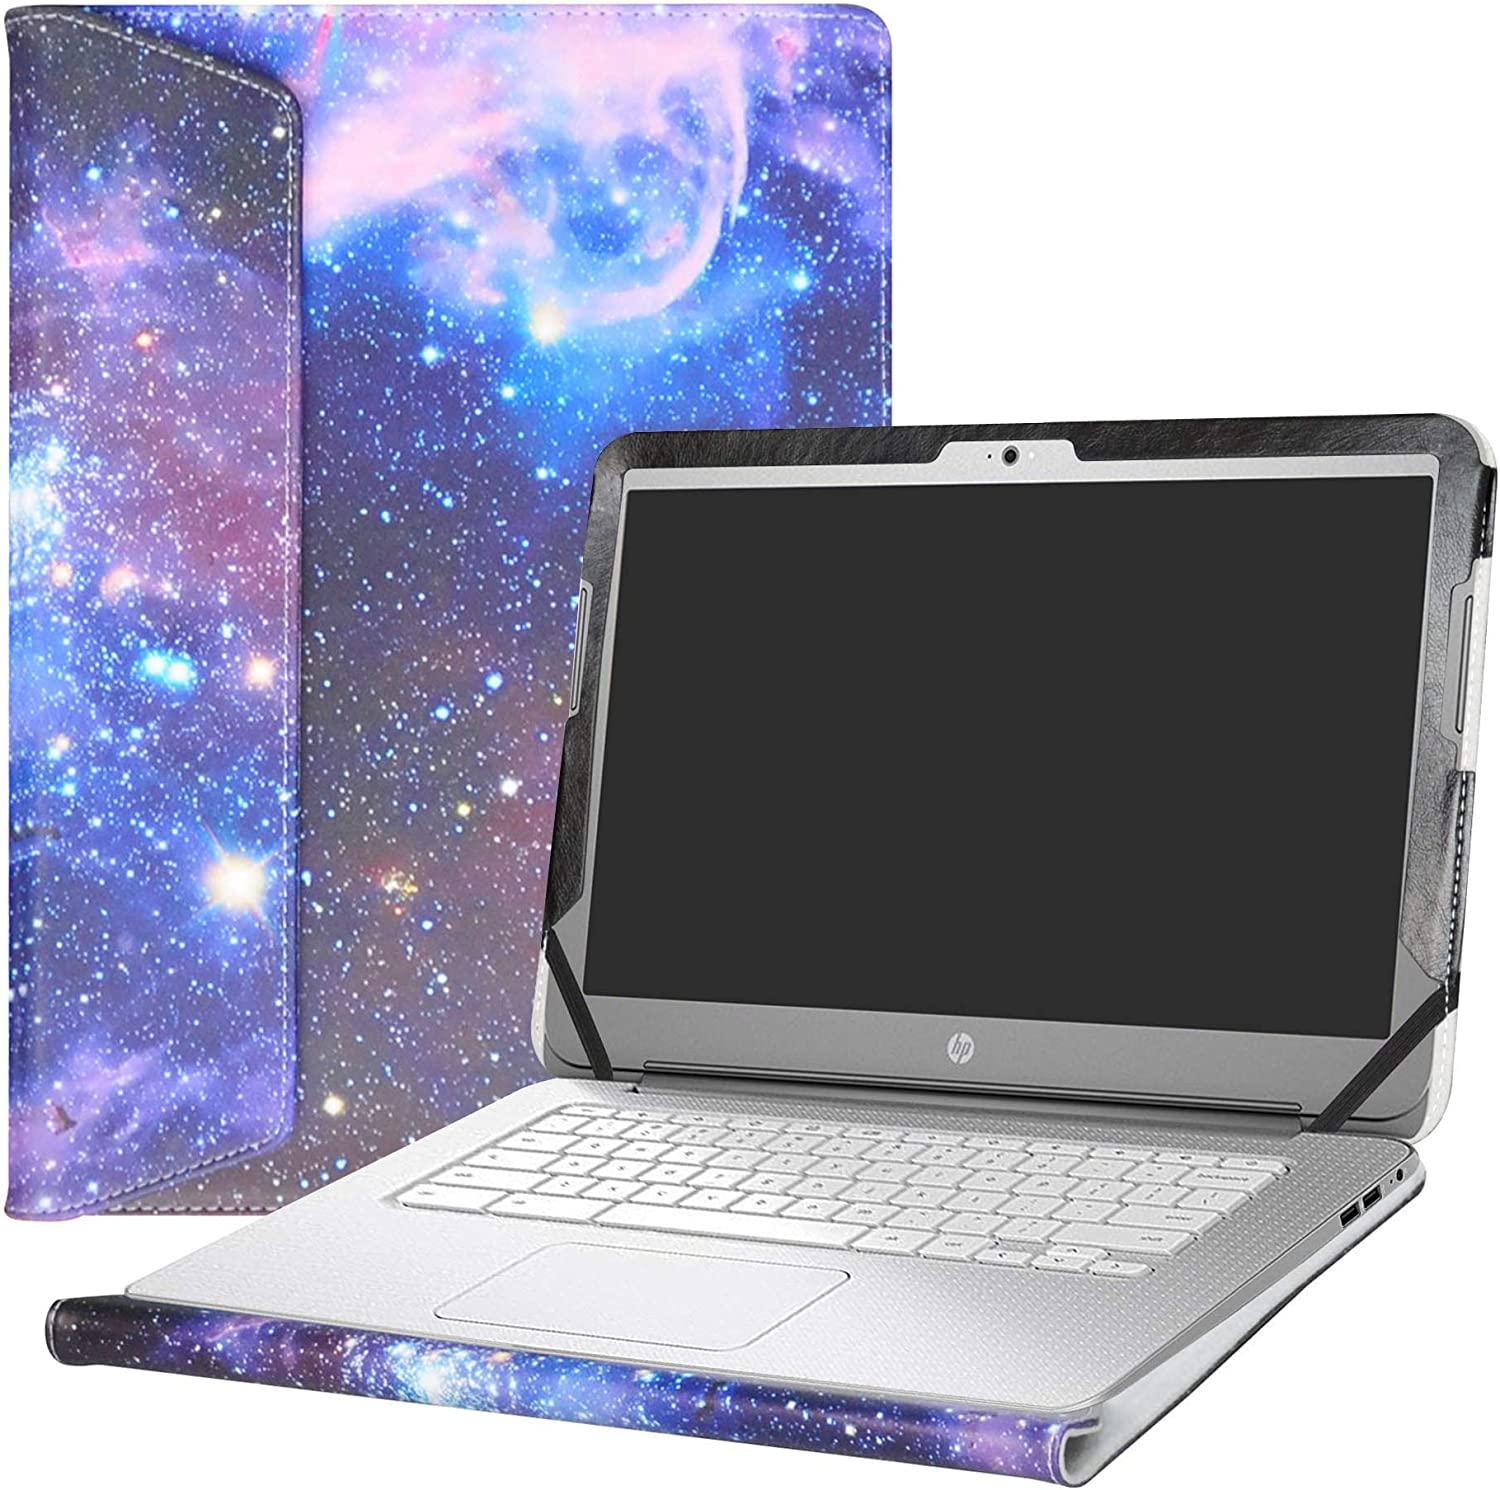 "Alapmk Protective Case Cover for 14"" HP Chromebook 14 14-akXXX 14-XXXX 14-qXXX & HP Chromebook 14 G1 G2 G3 G4 Series Laptop(Warning:Not fit HP Chromebook 14 G5/14-caXXX Series),Galaxy"